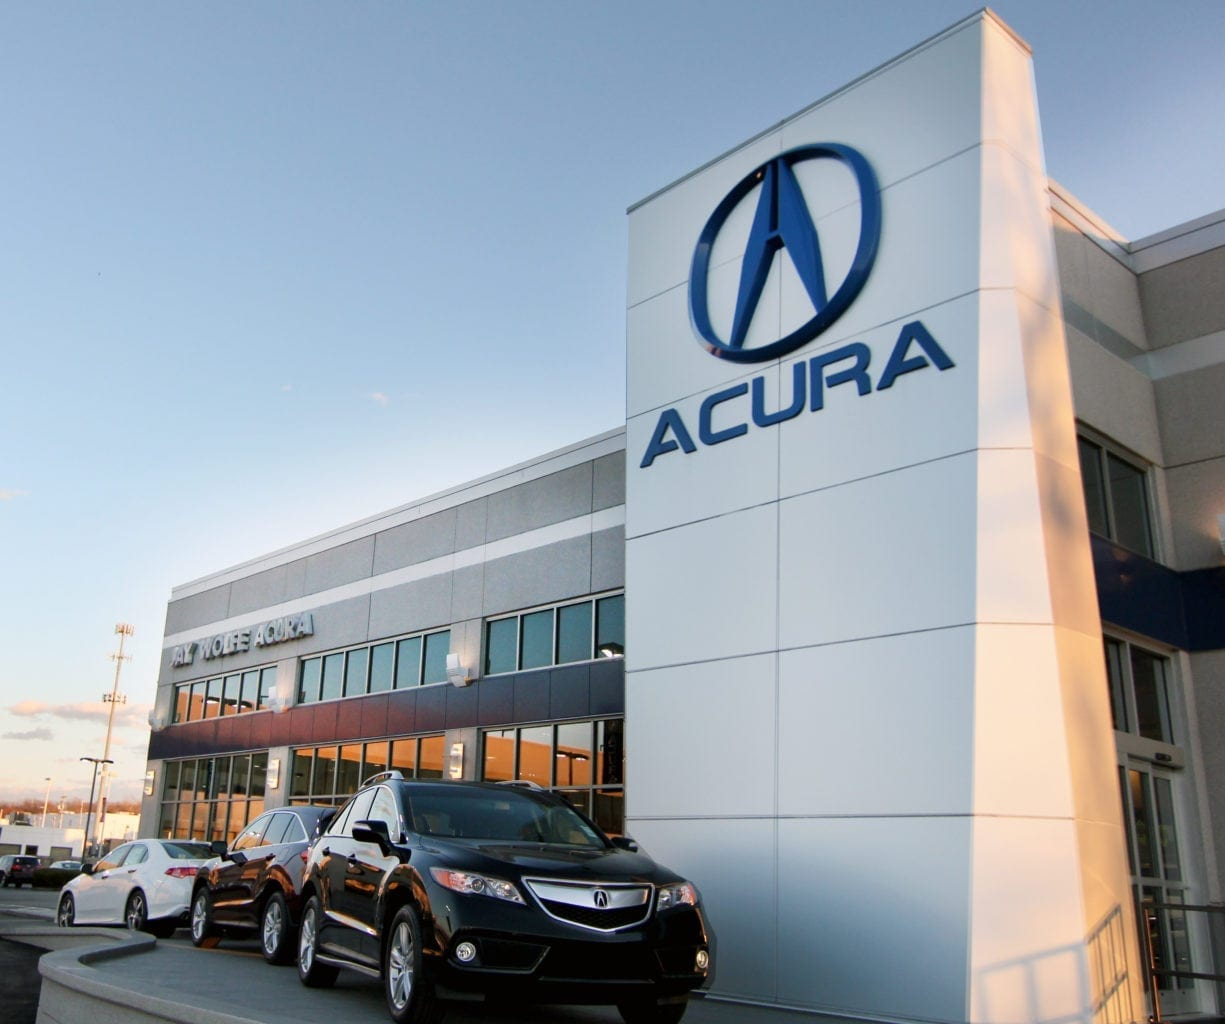 Kansas City Acura And Used Car Dealership